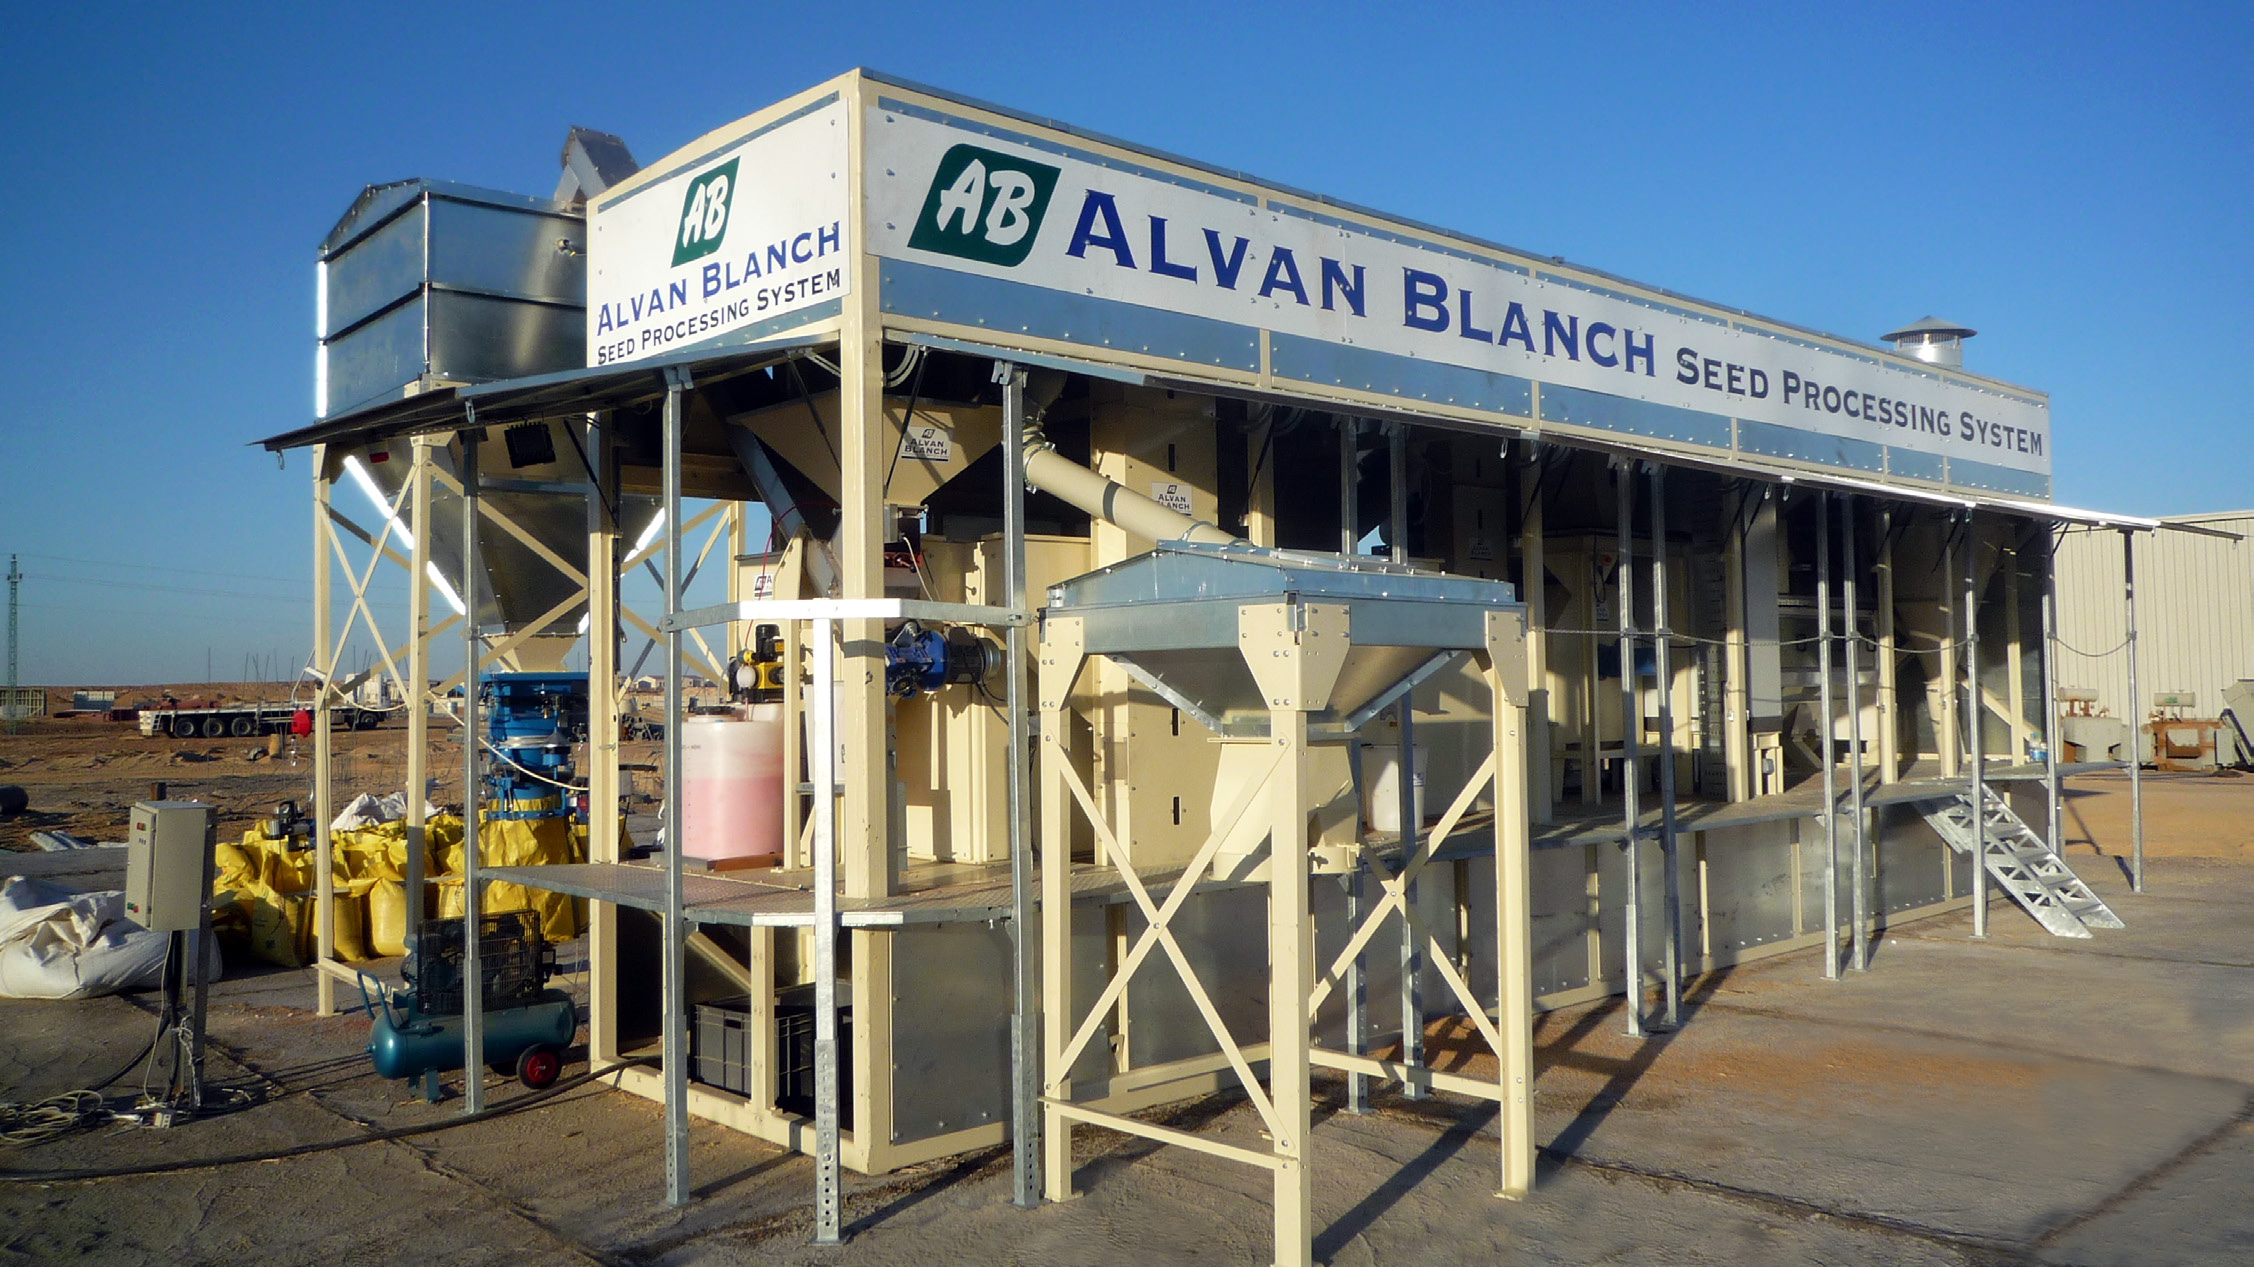 Alvan Blanch Skid Mounted Seed Cleaning Plant Sudan and Egypt Page 4 Image 0001